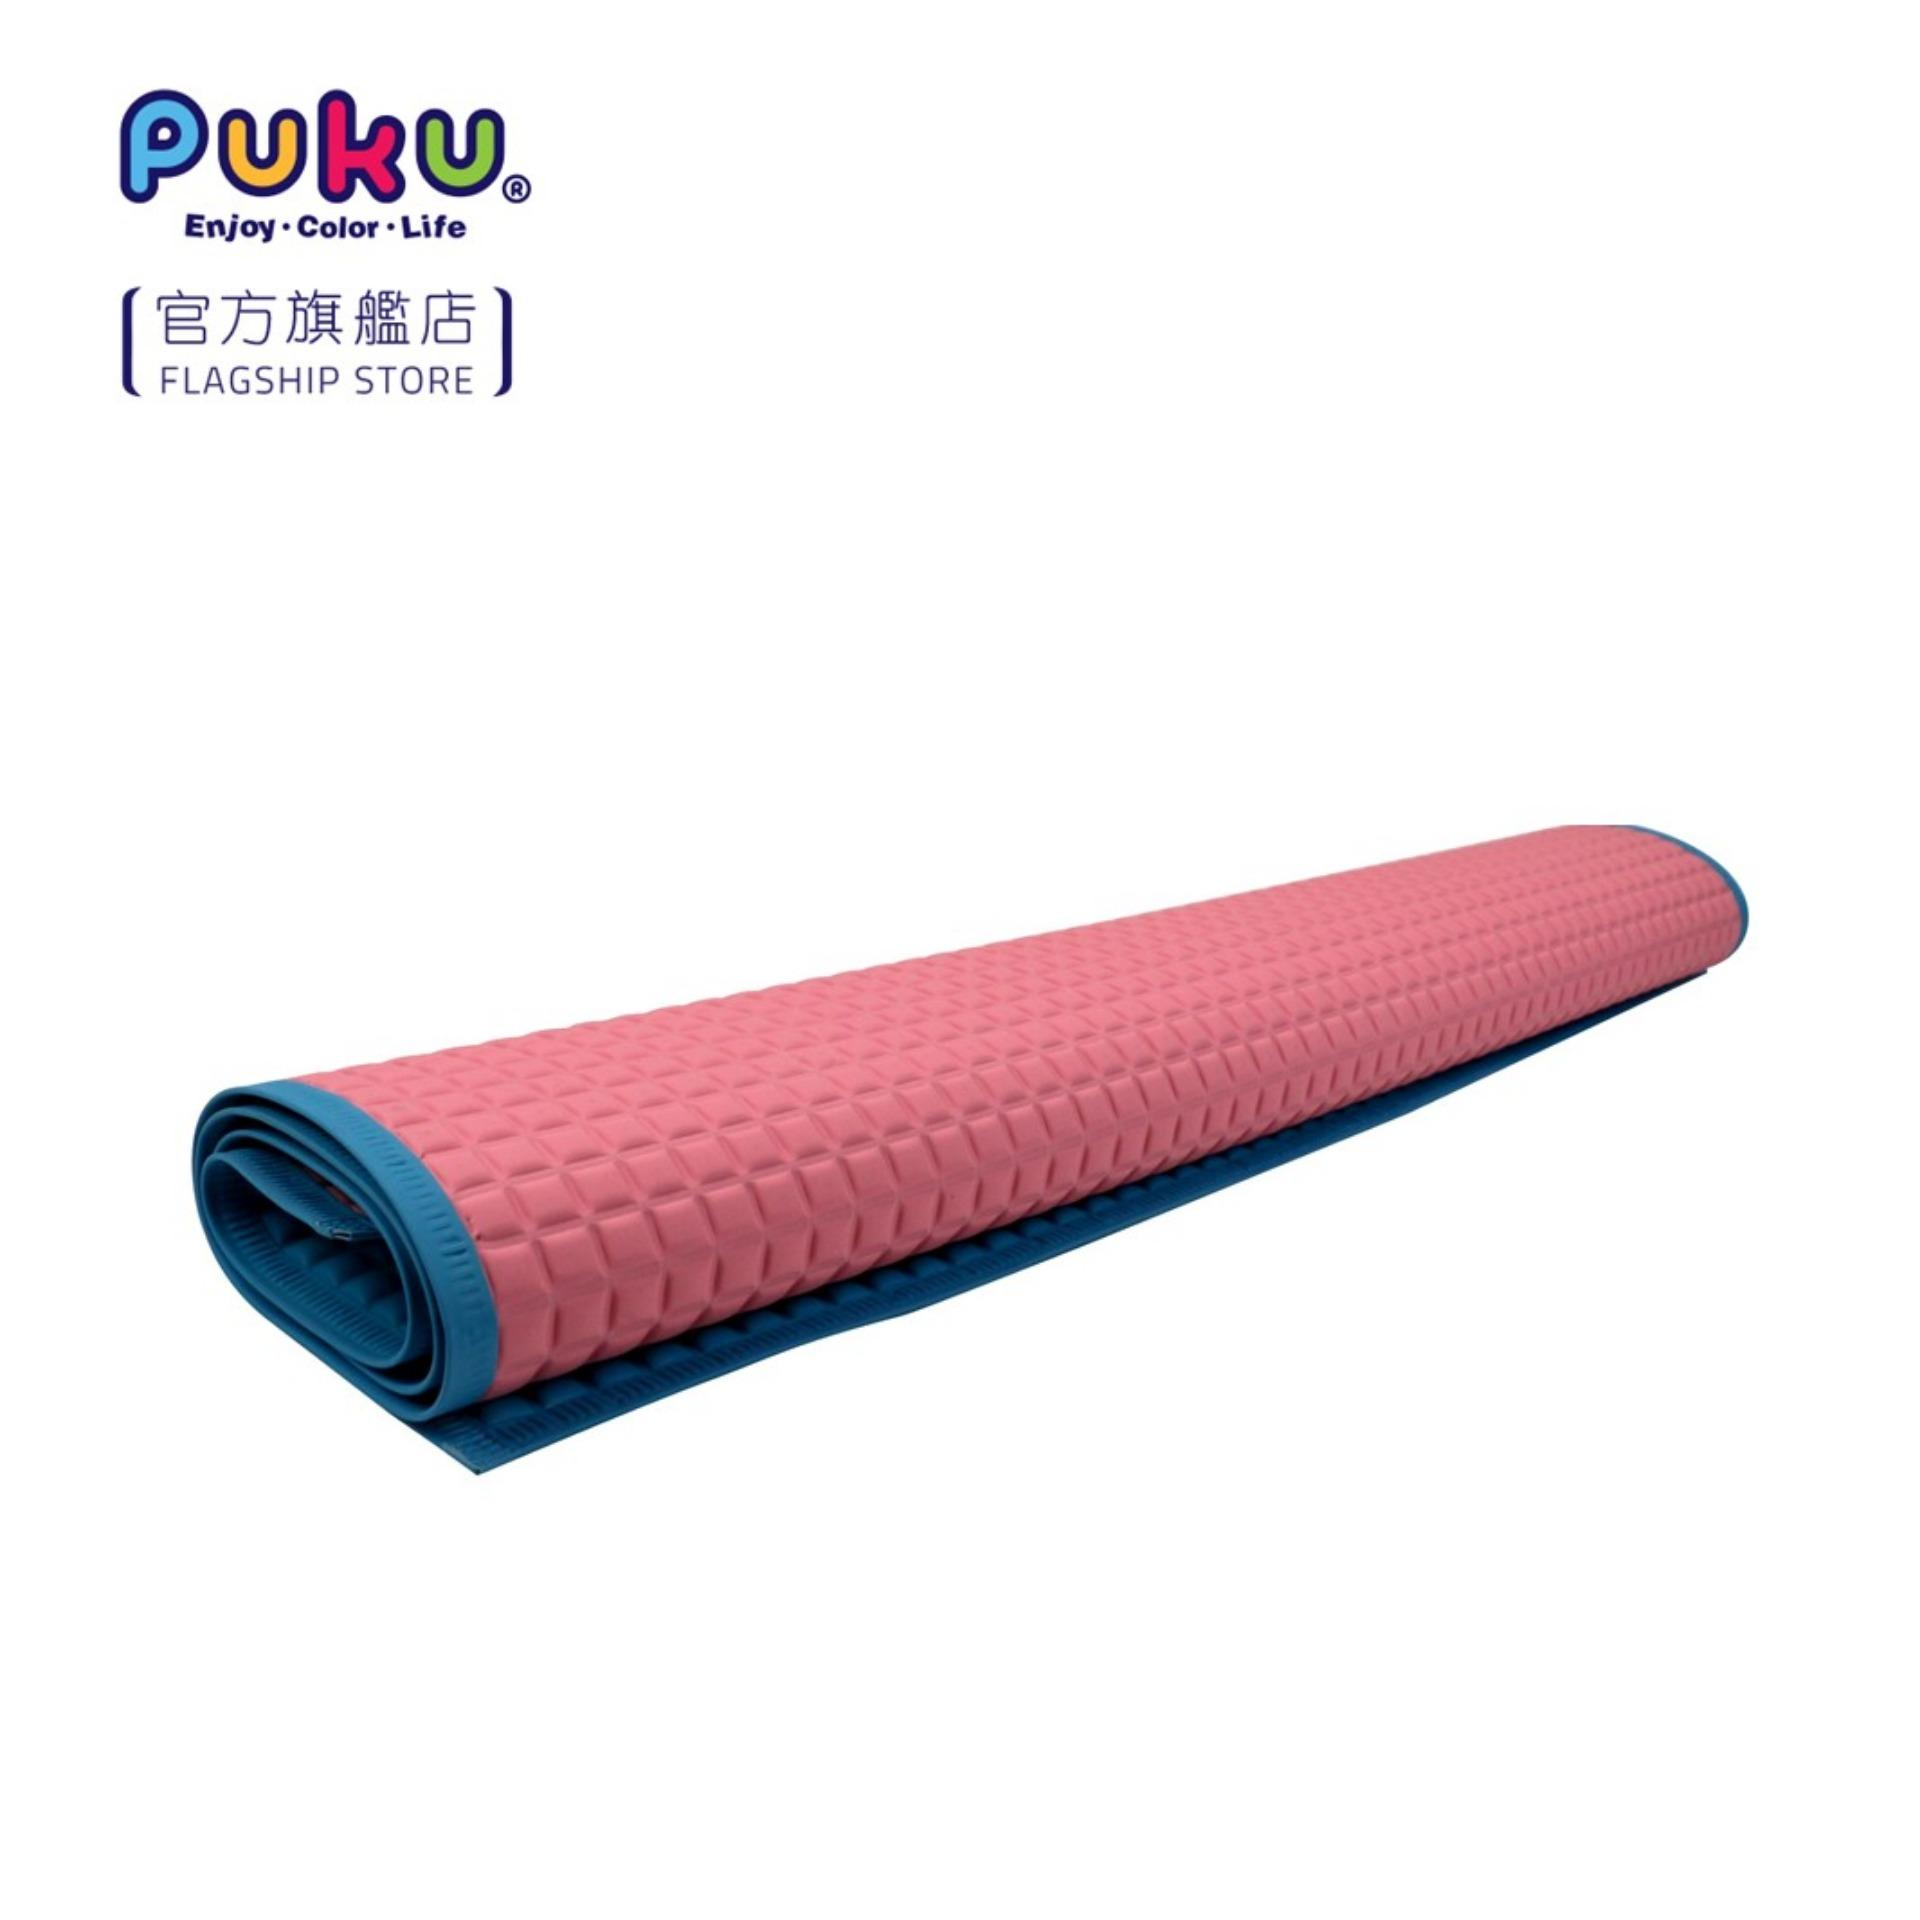 Puku Air Filled Rubber Cot Sheet 60cmx90cm By Puku Official Store